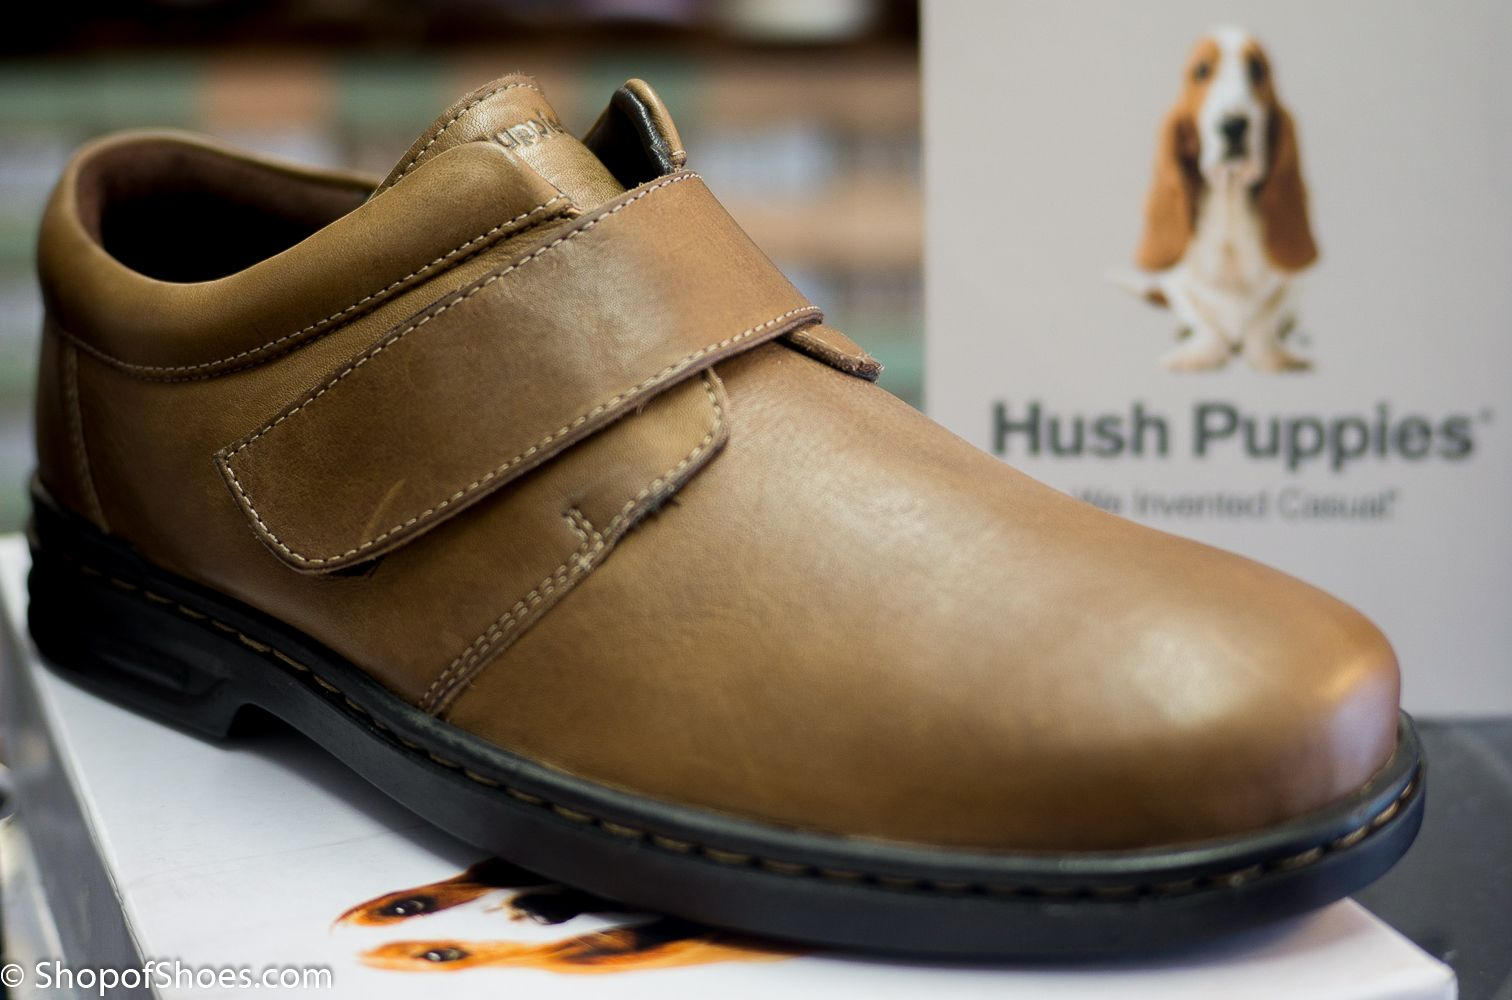 hush puppies leather shoes review